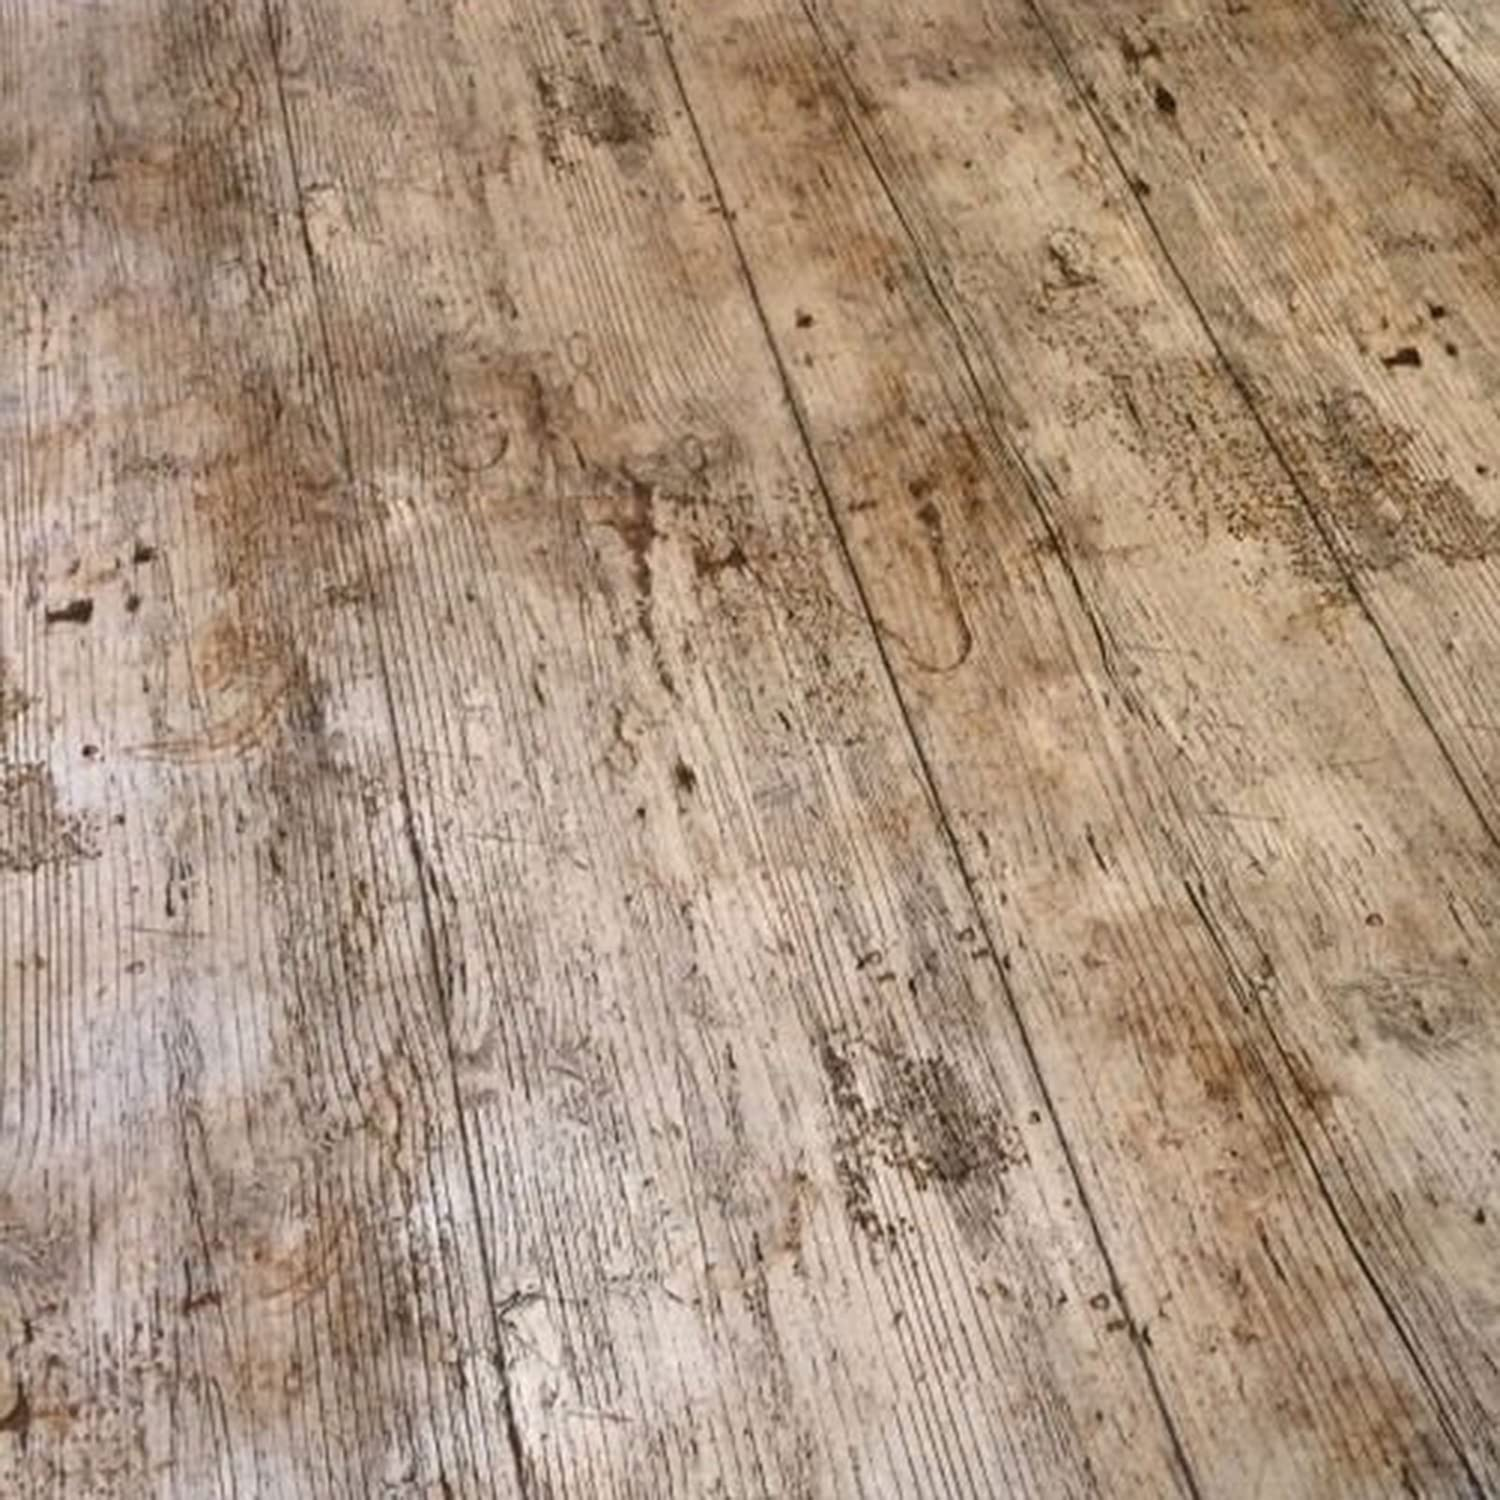 QPC DIRECT Wooden Plank Rustic Wood Effect Print PVC Oilcloth Table Cover  Vinyl Tablecloth 2 Metres: Amazon.co.uk: Kitchen U0026 Home